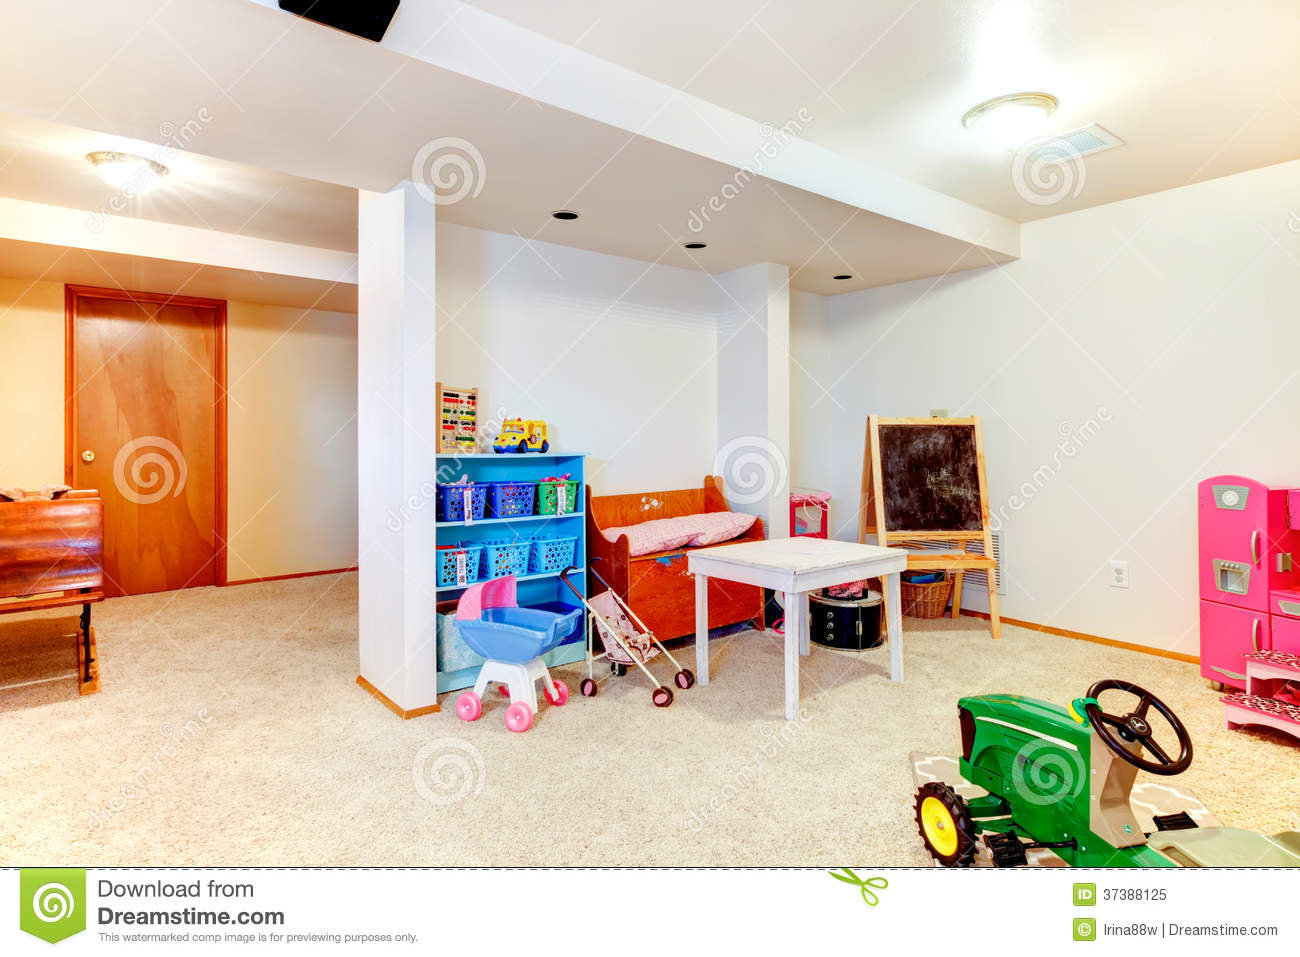 Great kids room with toys royalty free stock photo image for Well designed bedrooms